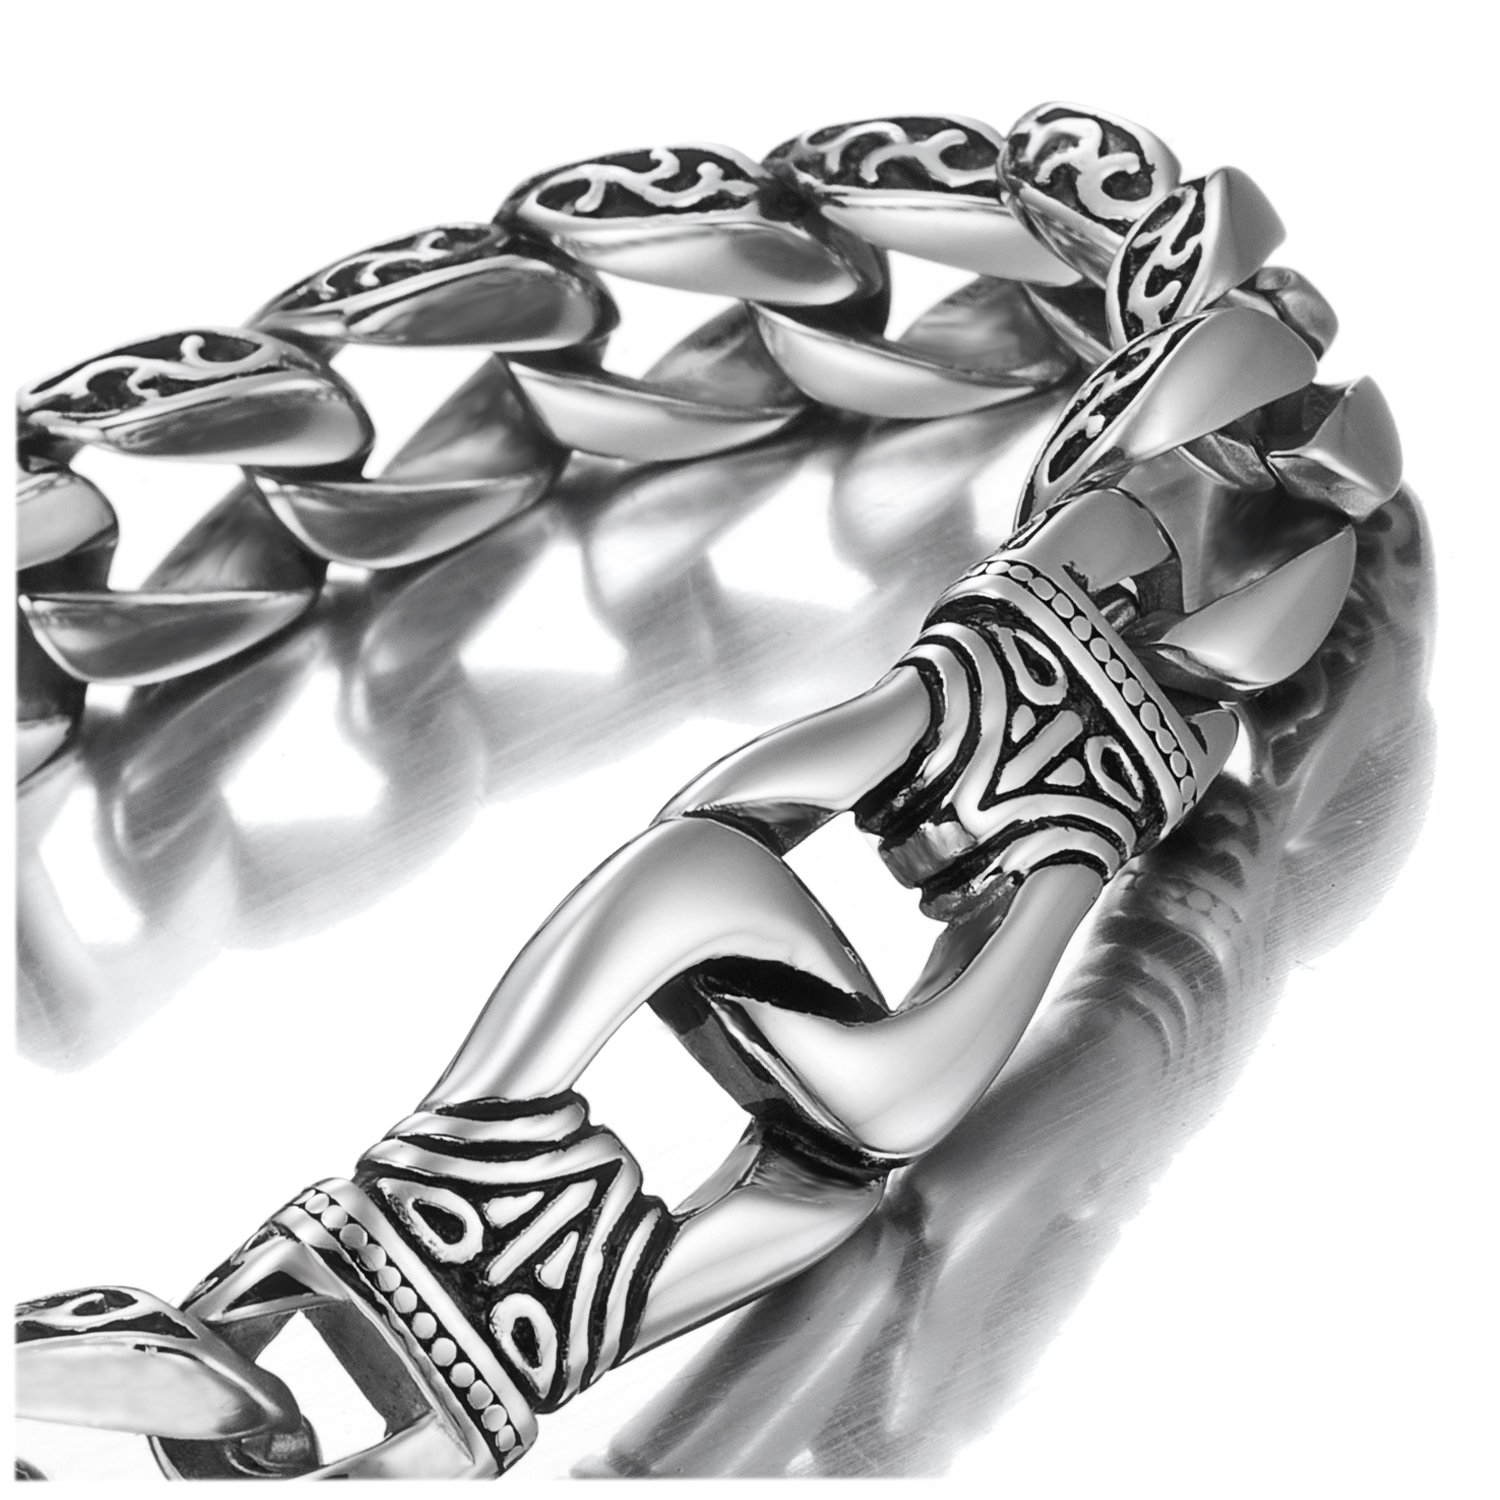 Amazing Stainless Steel Men's link Bracelet Silver Black 9 Inch AC1103